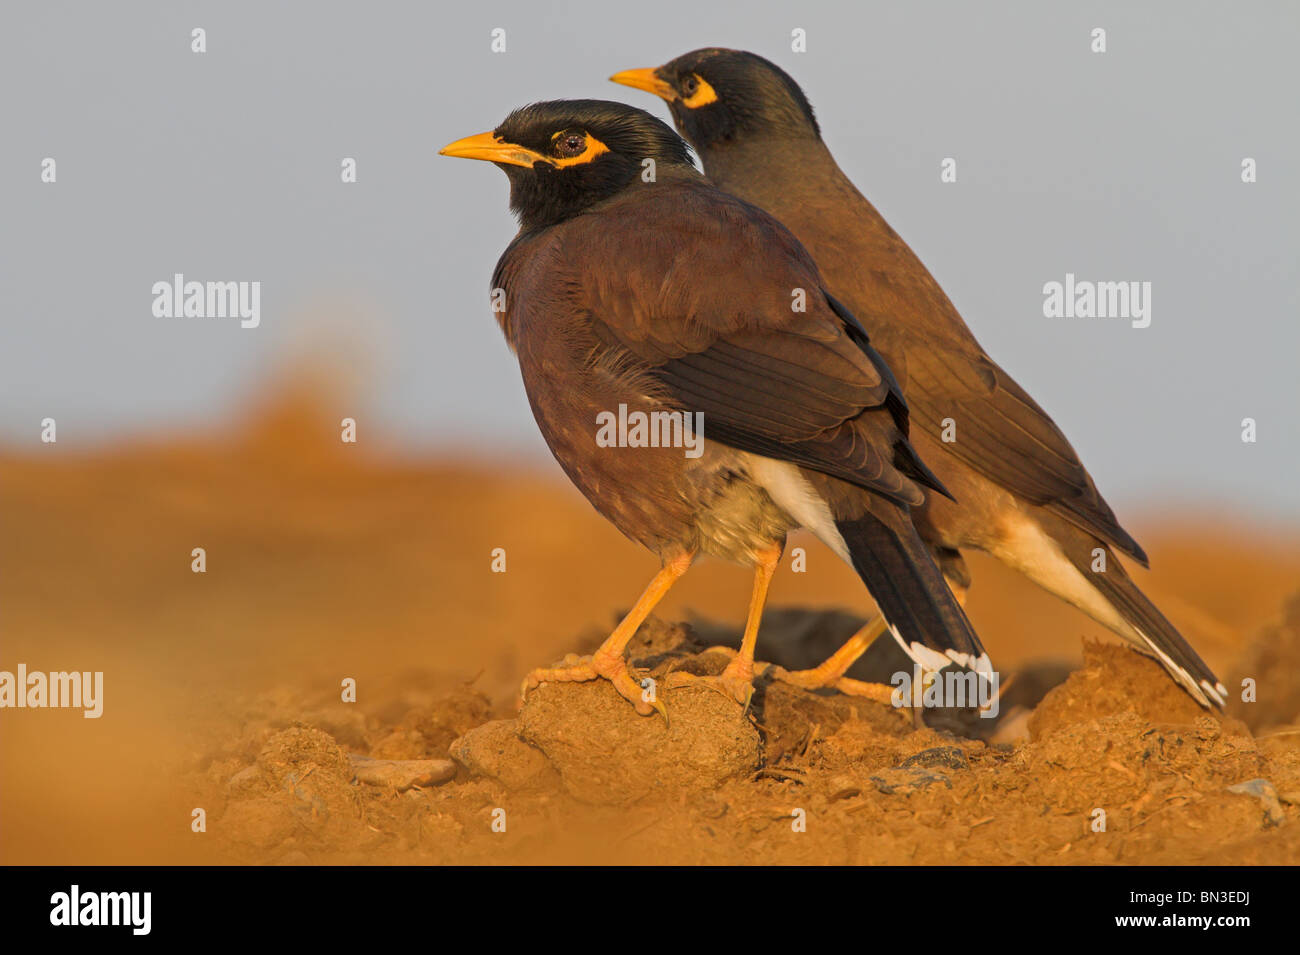 Two Common Mynas (Acridotheres tristis), side view - Stock Image